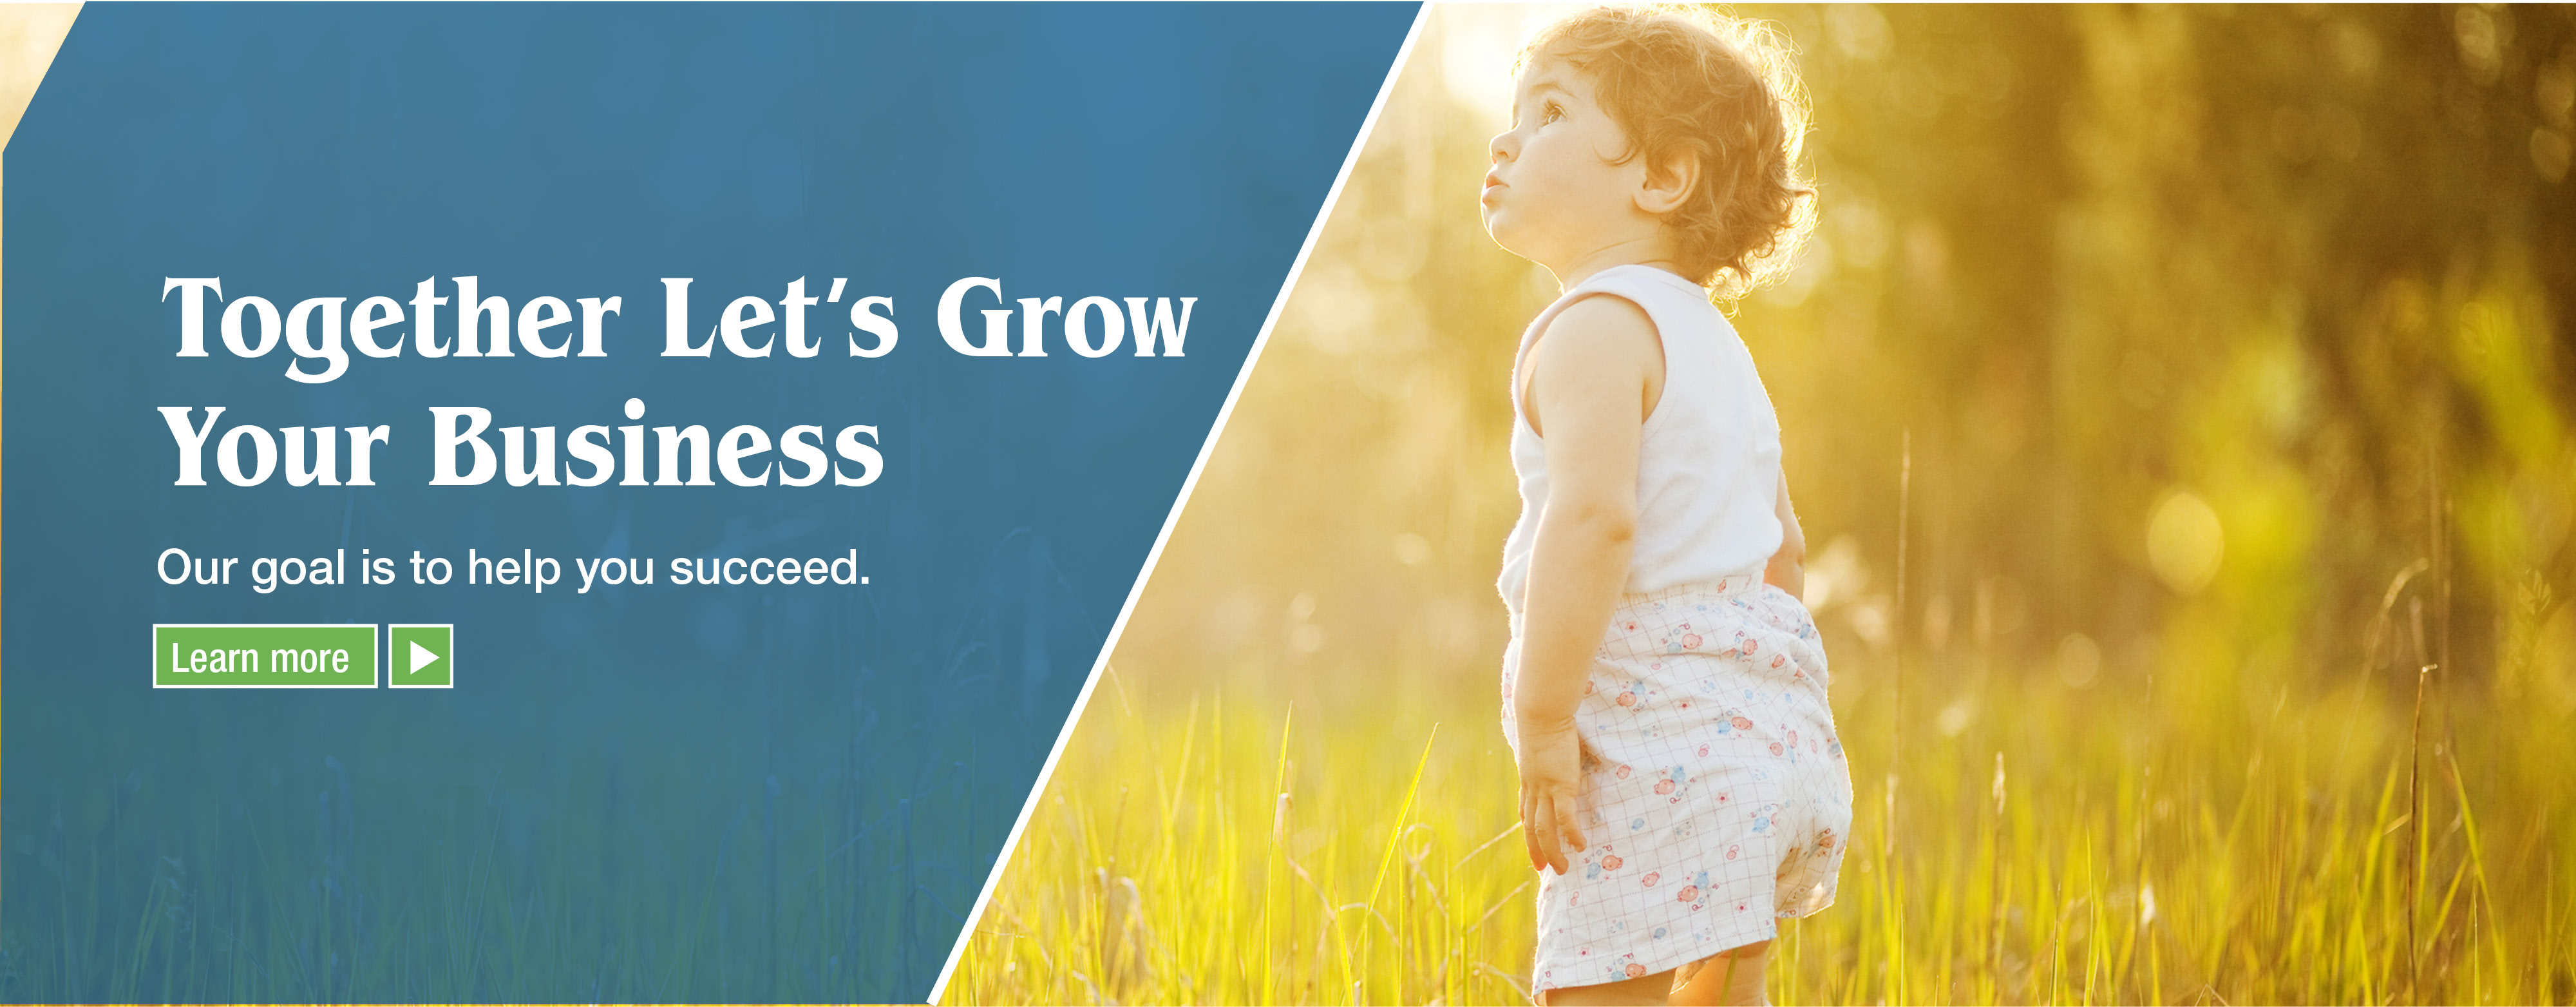 Together Let's Grow Your Business: Our goal is to help you succeed. Find out how.